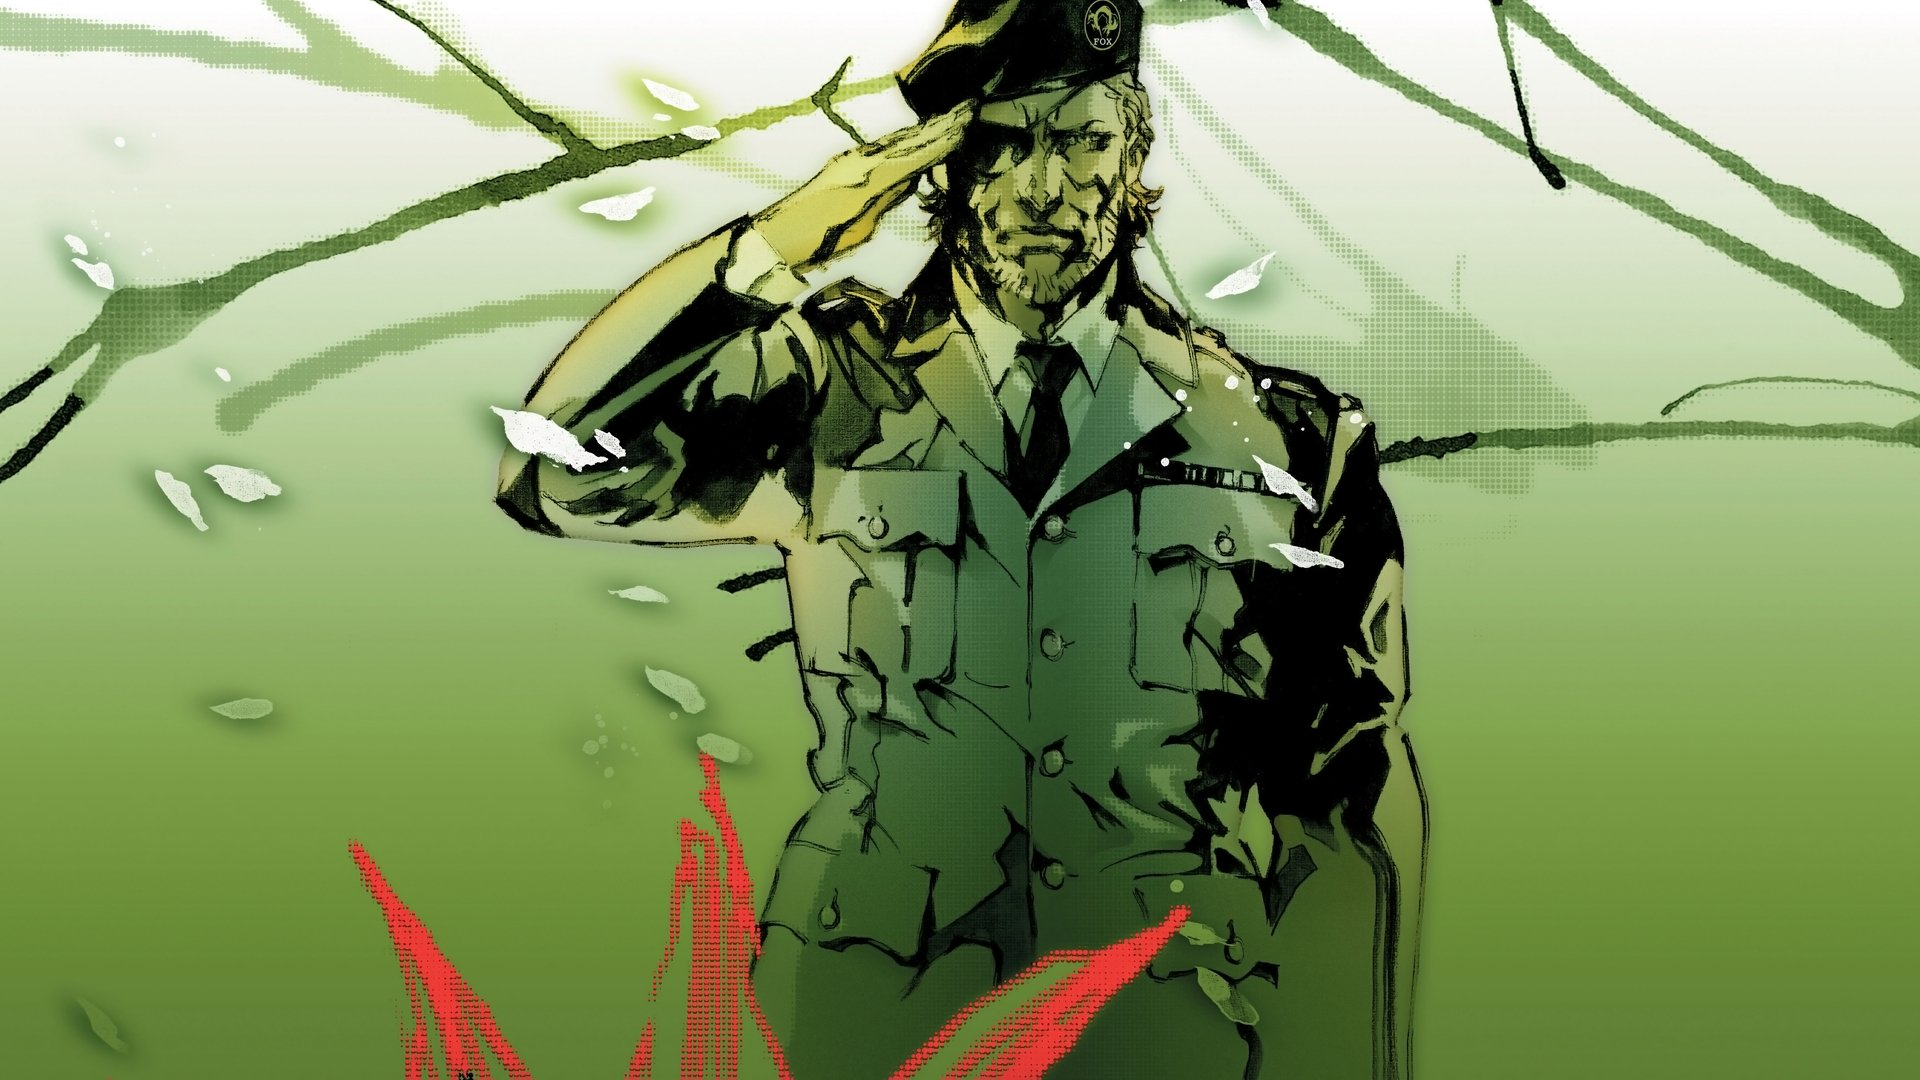 Free Metal Gear Solid 3 Snake Eater Mgs 3 High Quality